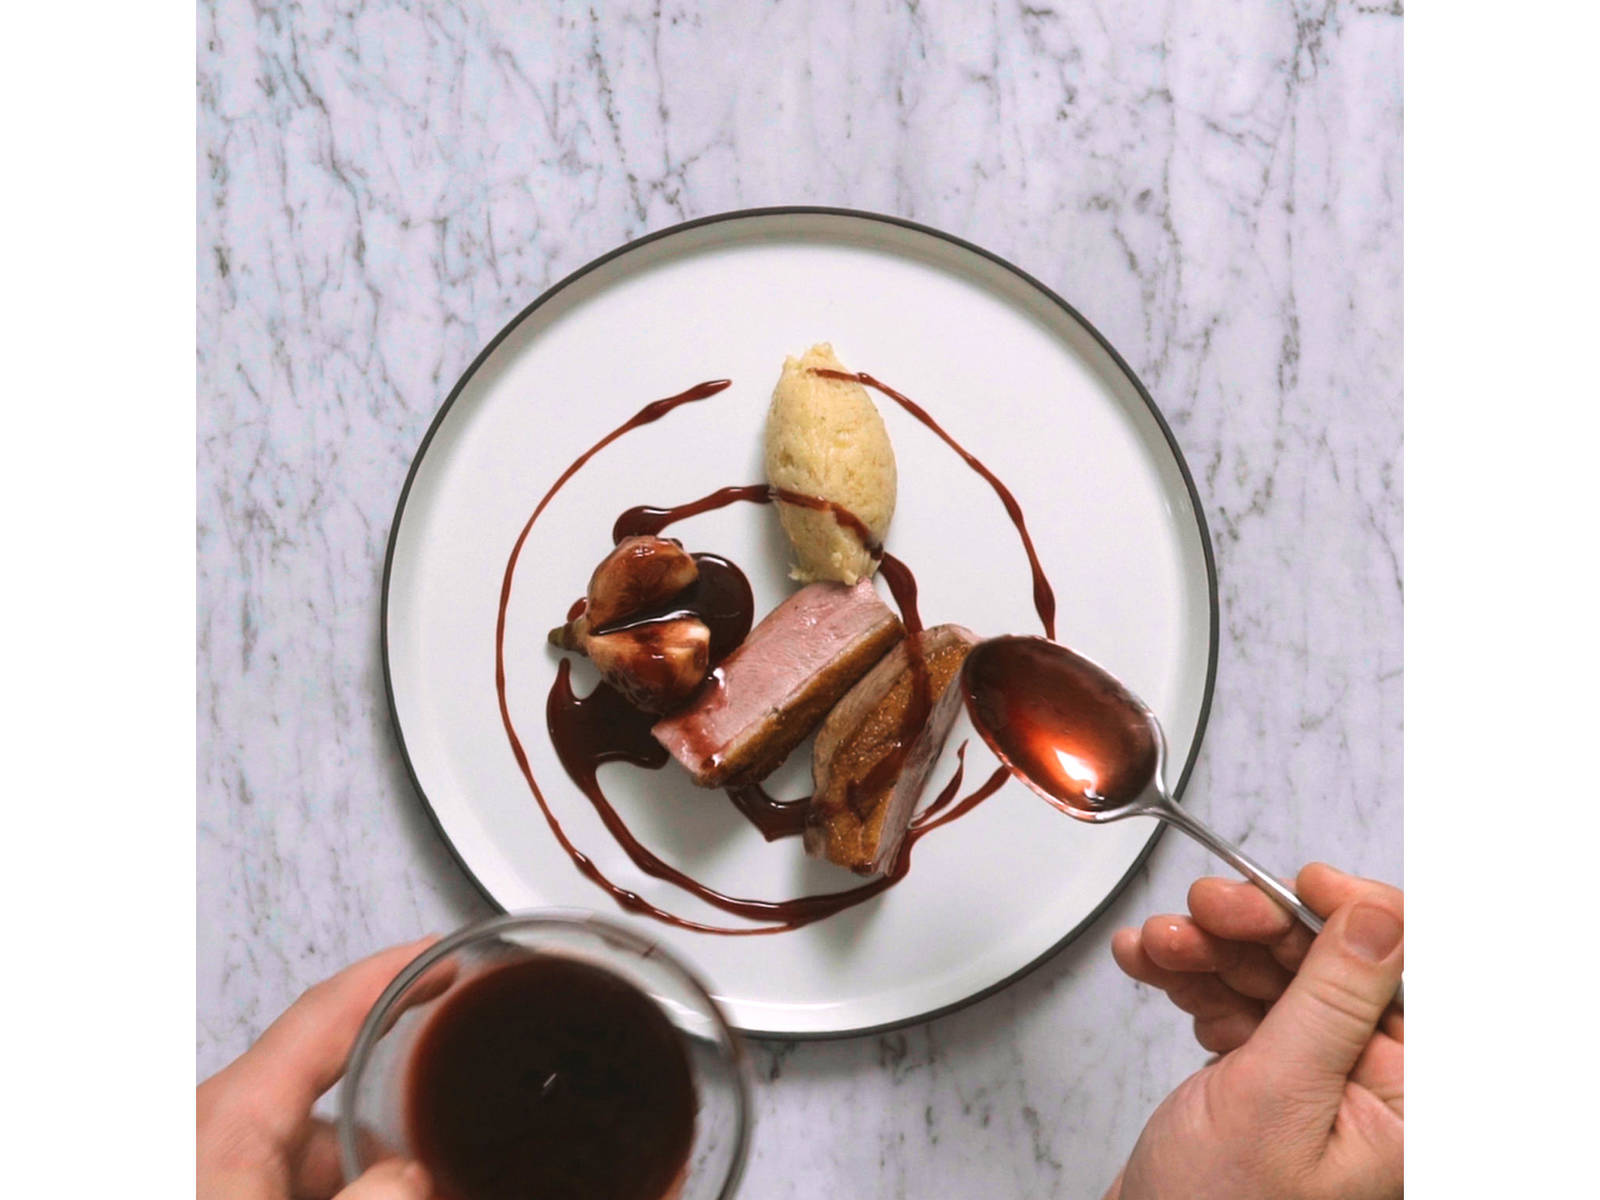 To serve, slice duck breast and halve figs. Arrange on serving plates together with parsnip puree, then drizzle with cassis reduction and sprinkle with thyme.